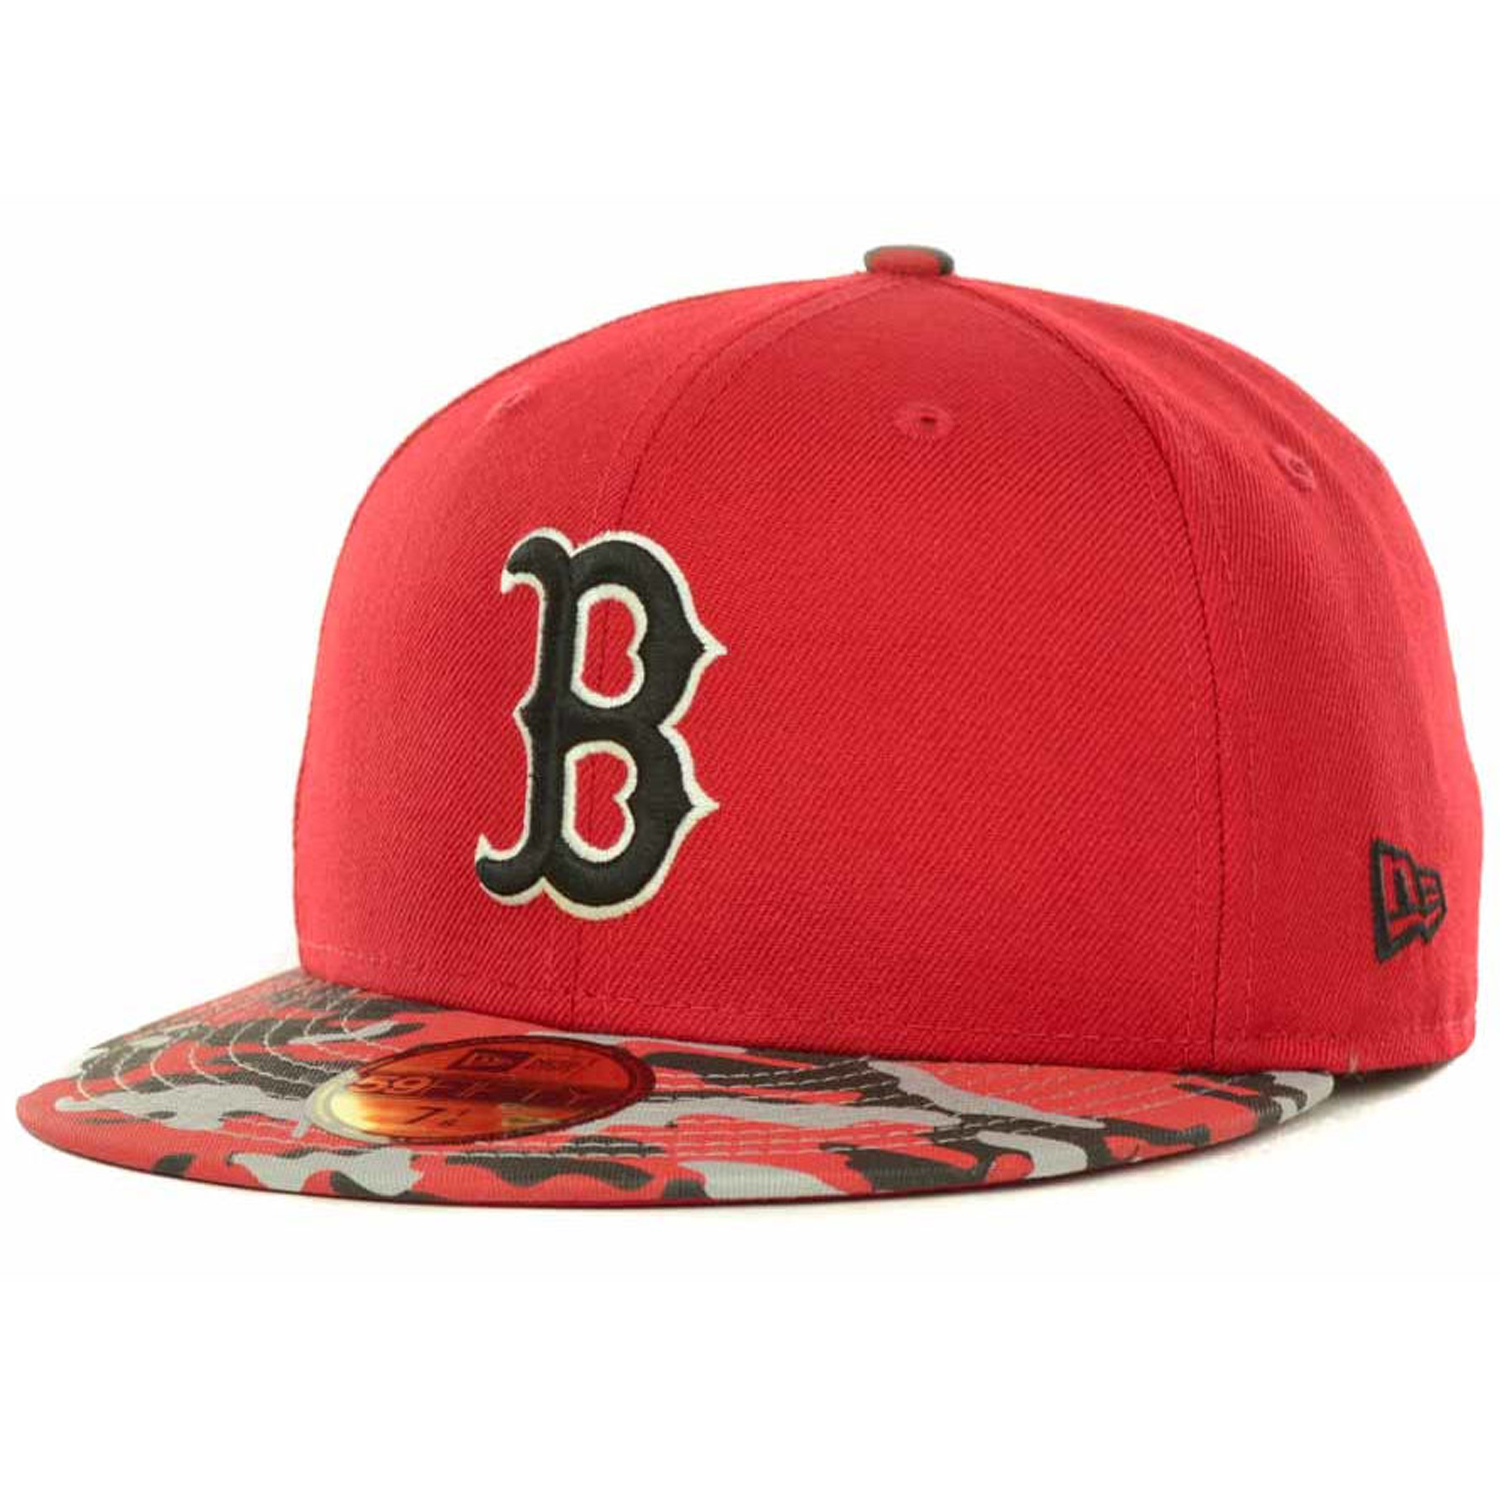 d8083786b Details about New Era Boston Red Sox In Living Camo Visor Team Color  59Fifty Fitted Cap Hat